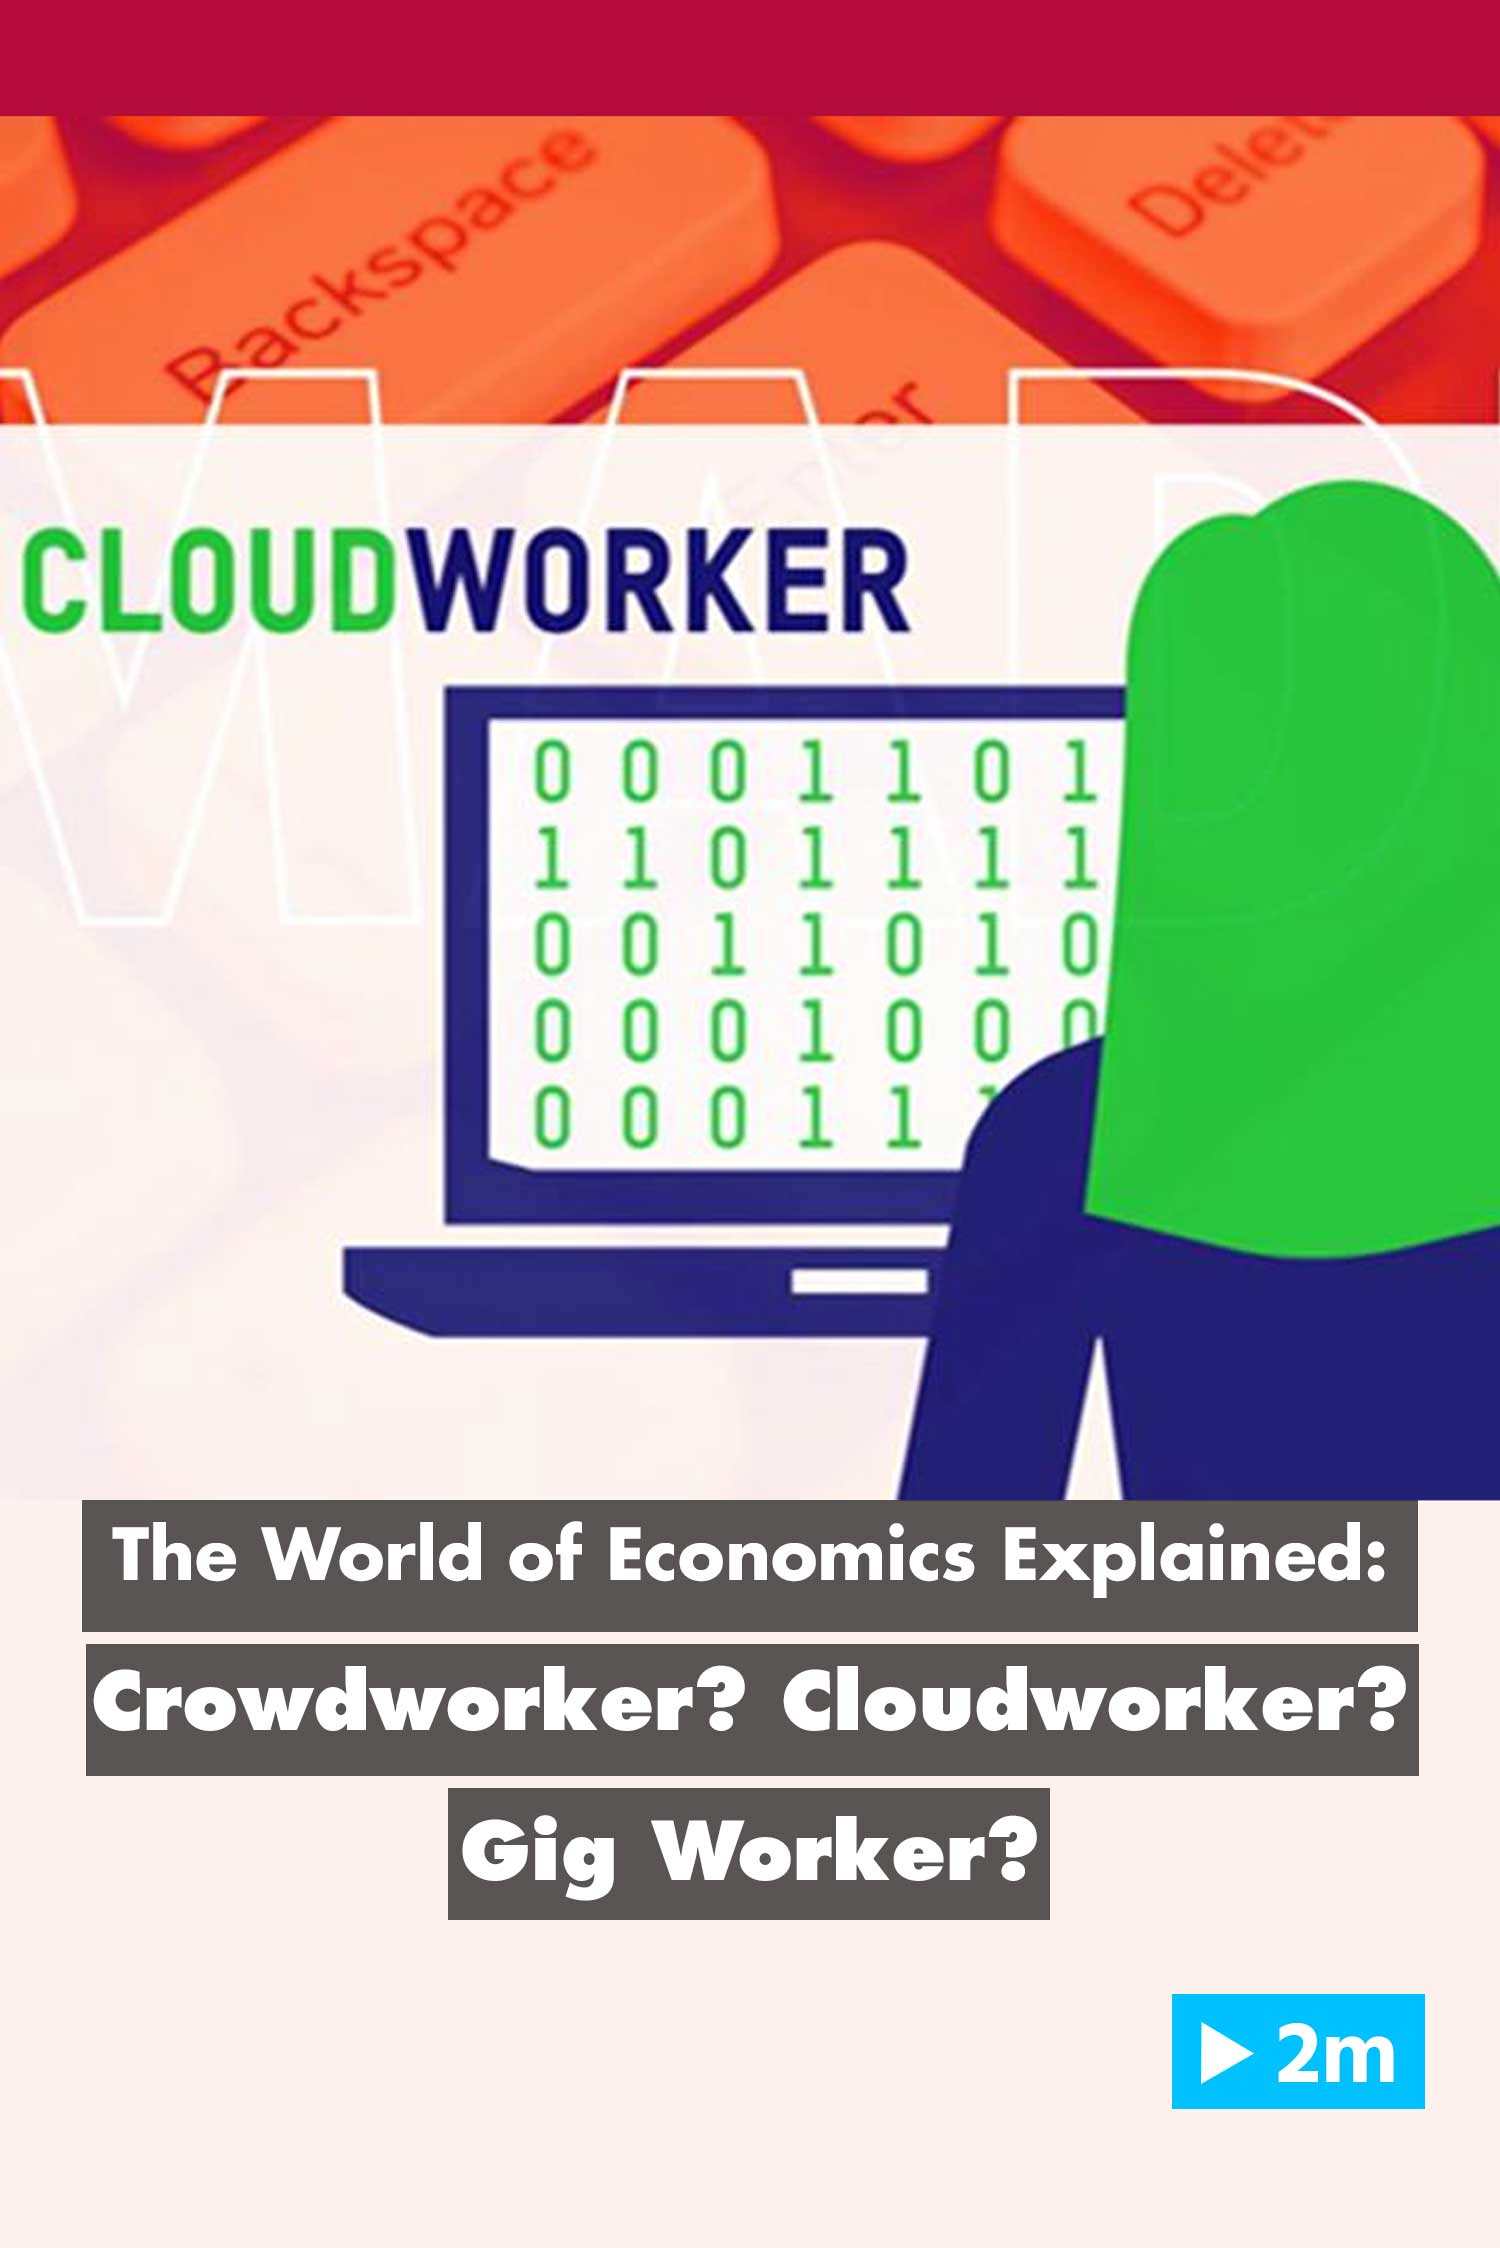 The World of Economics Explained: Crowdworker cloudworker gig work